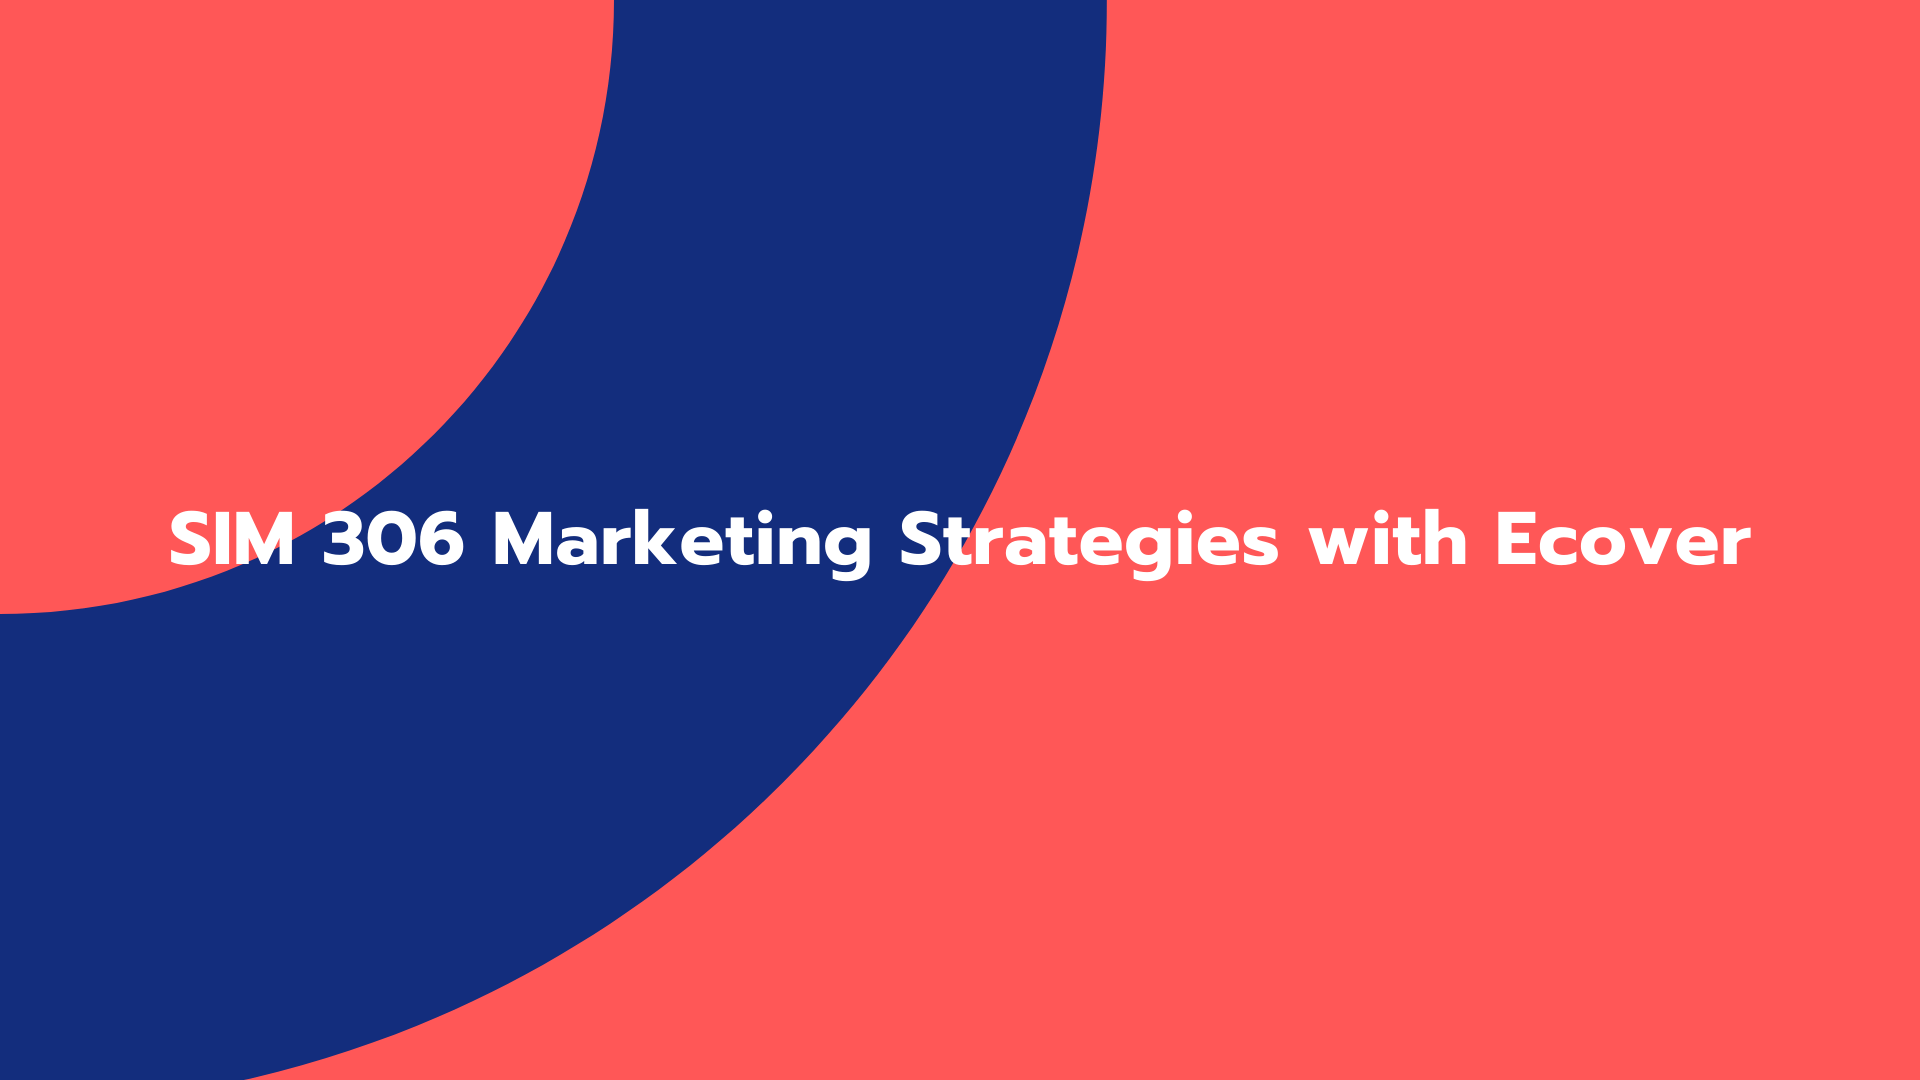 SIM 306 Marketing Strategies with Ecover